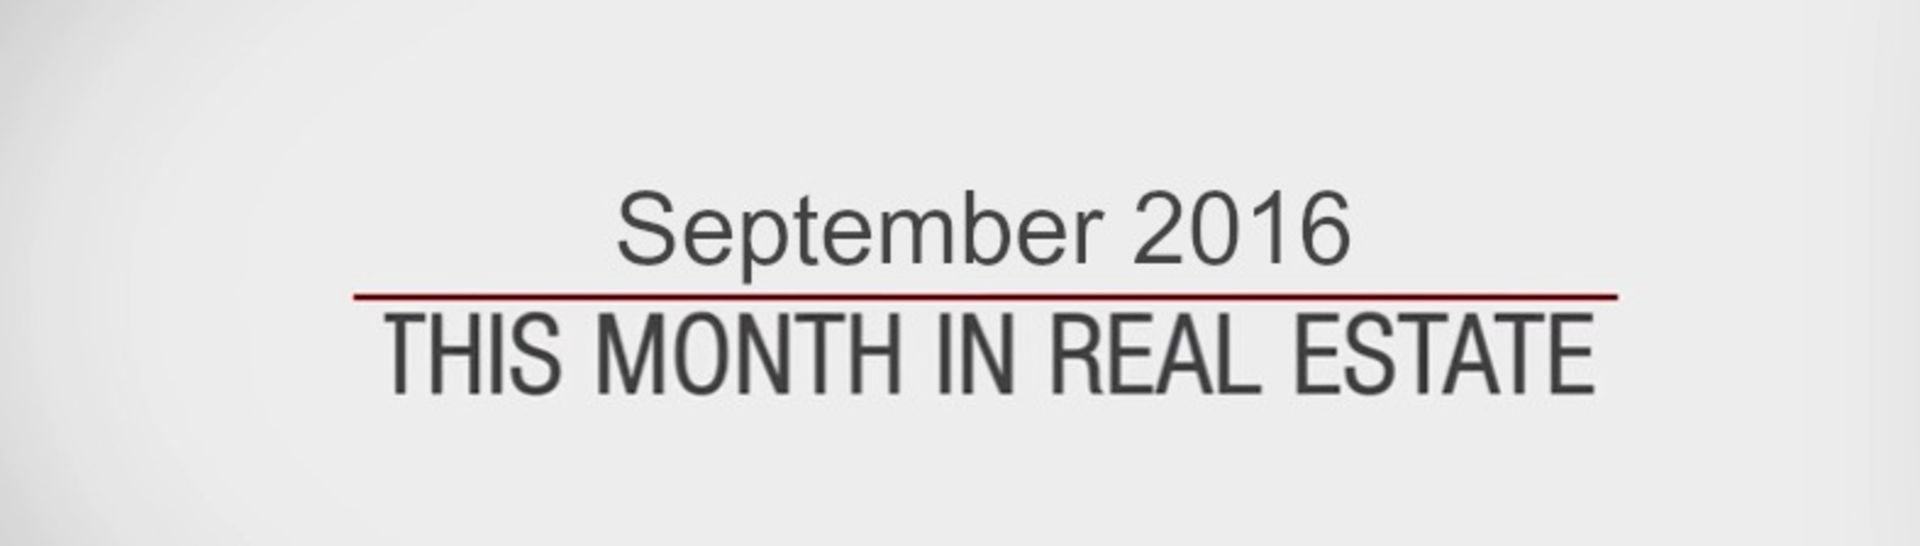 This Month in Real Estate – September 2016